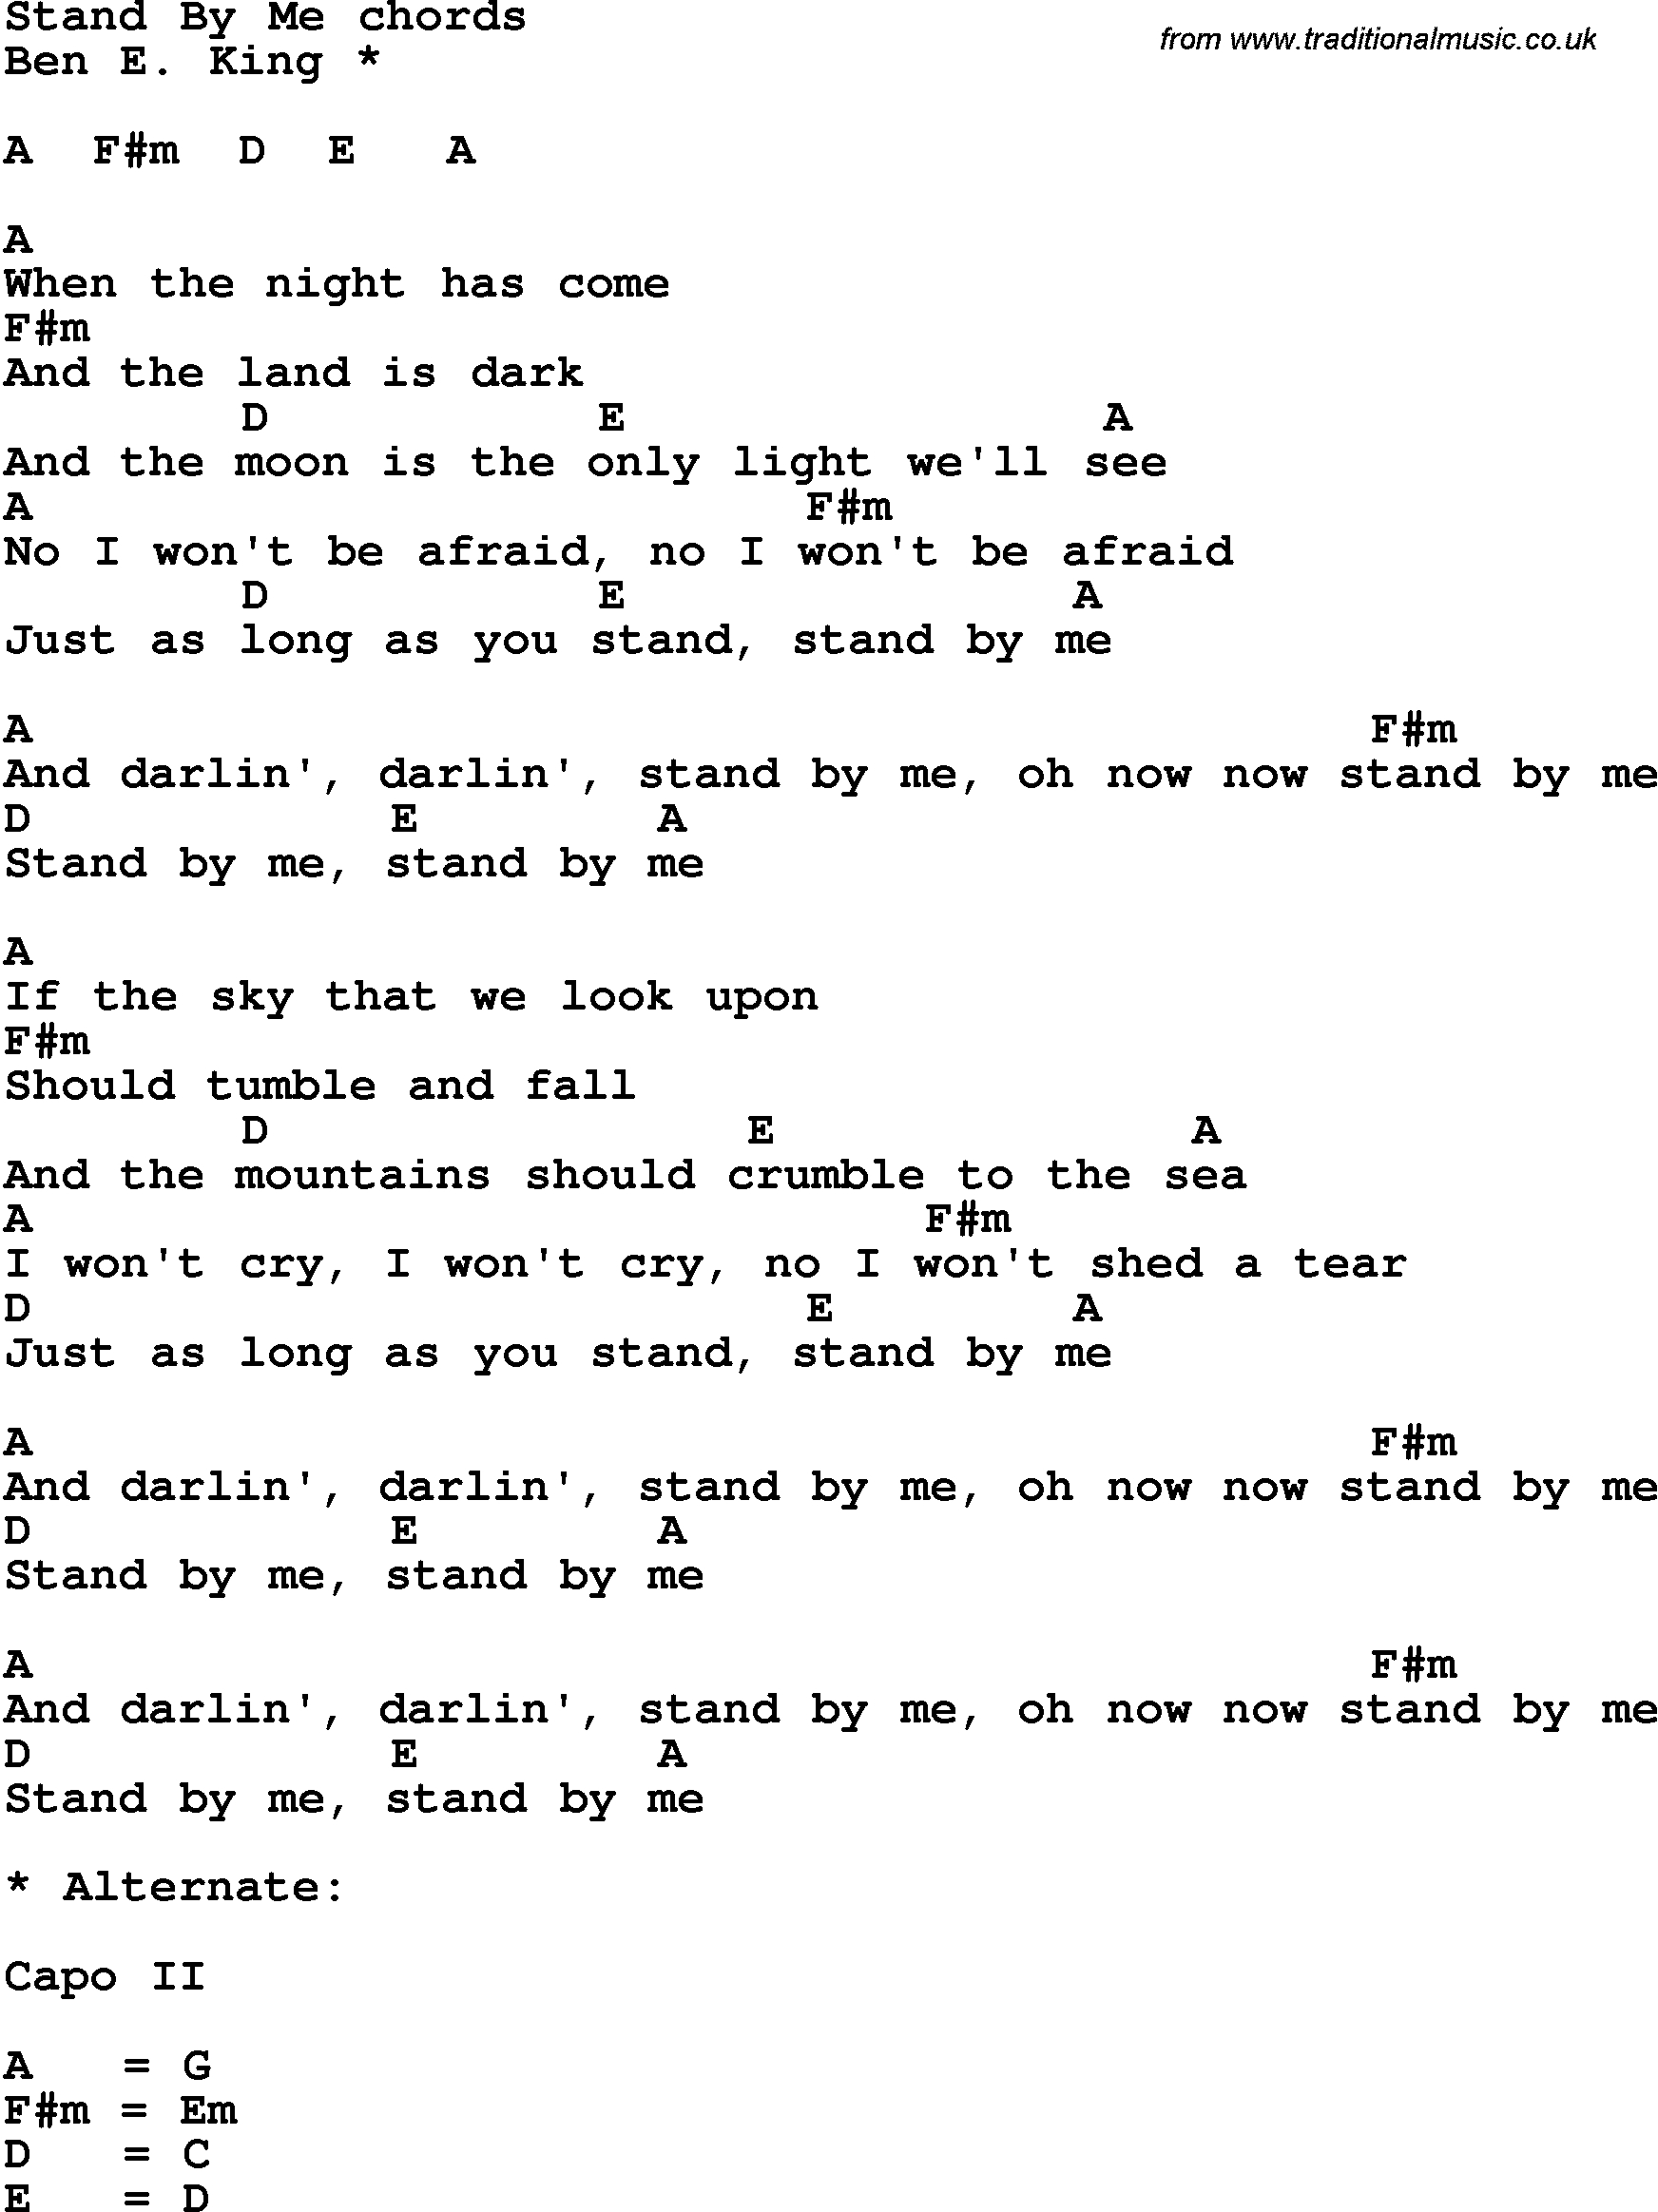 Stand By Me Chords Song Lyrics With Guitar Chords For Stand Me